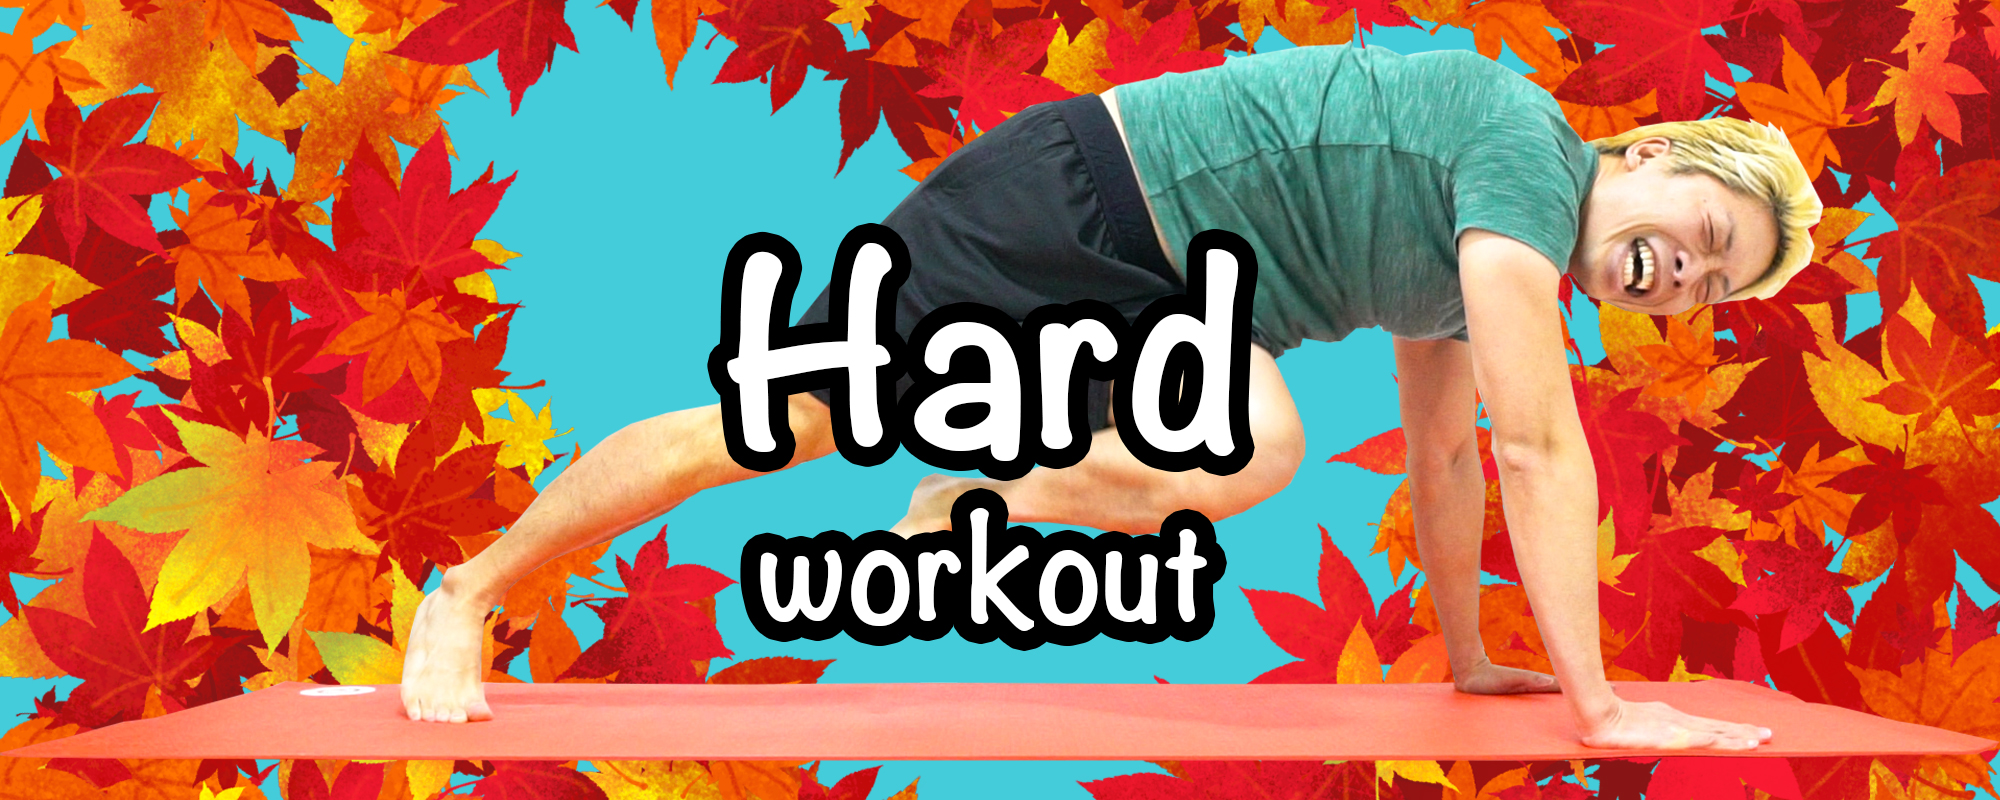 Super hard workout 4 weeks program